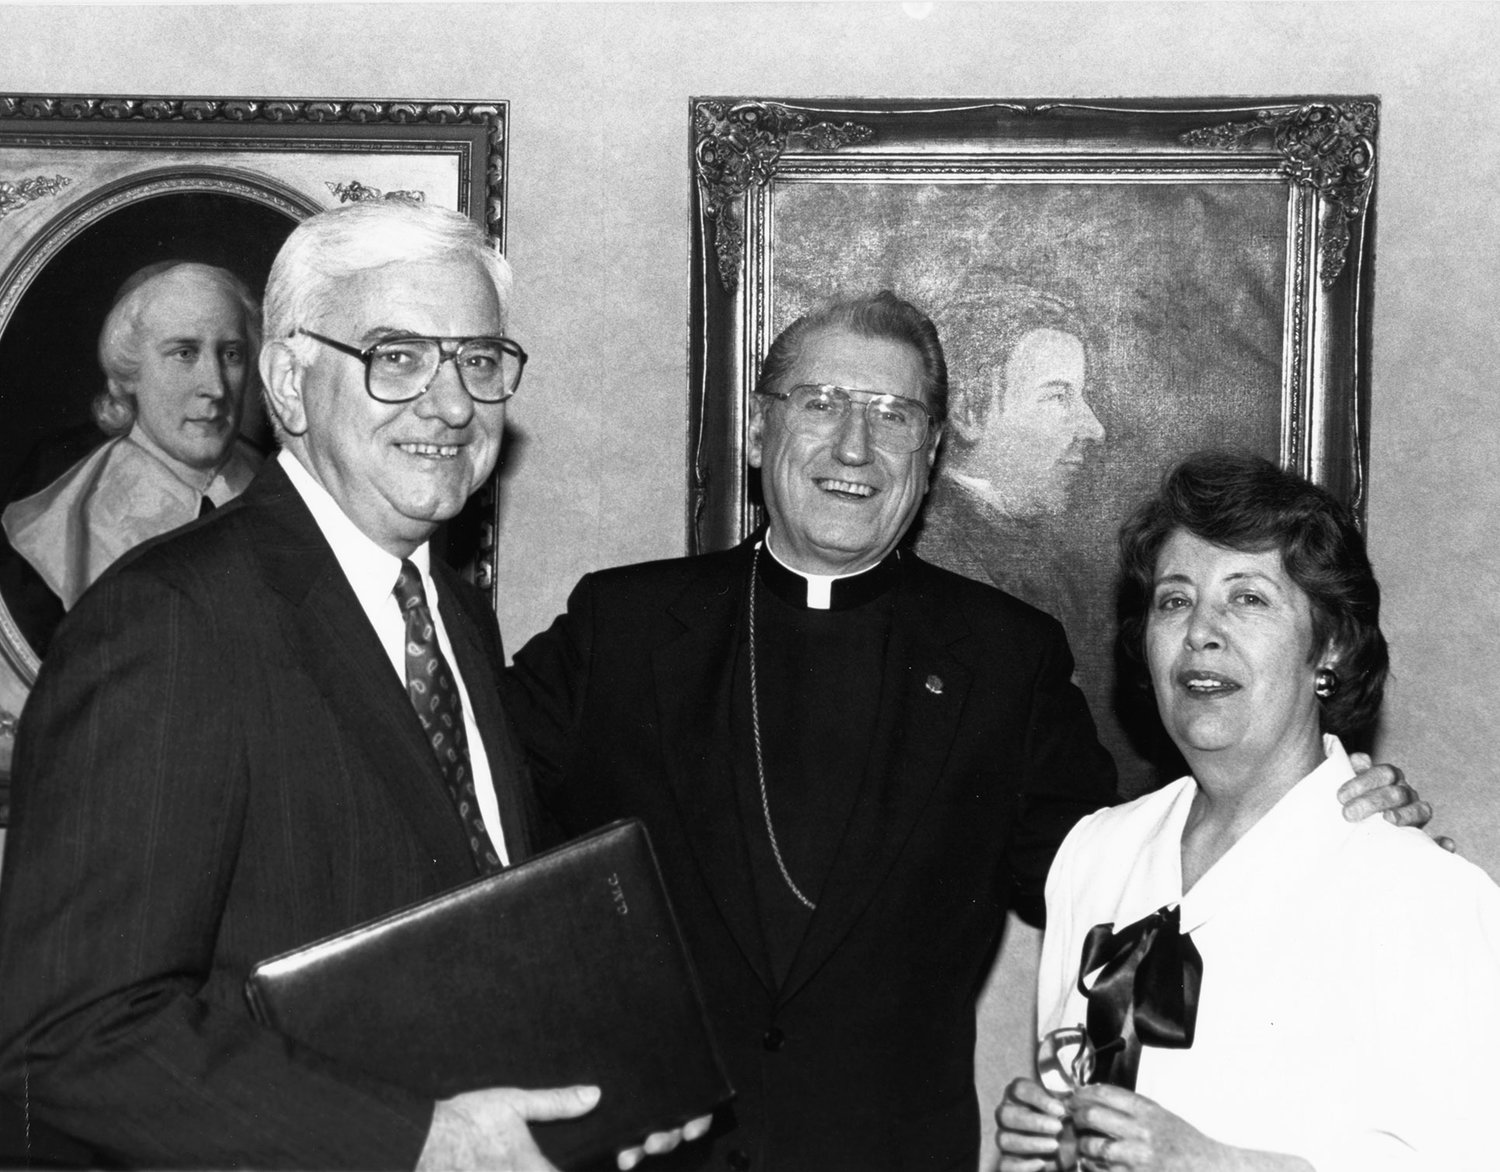 PROMOTION—In May 1990, Cardinal John O'Connor met with Gerald M. Costello, Catholic New York's founding editor in chief, and Anne M. Buckley, who the cardinal had named to succeed Costello the following year. Costello was retiring after serving as CNY's top editor for a decade.